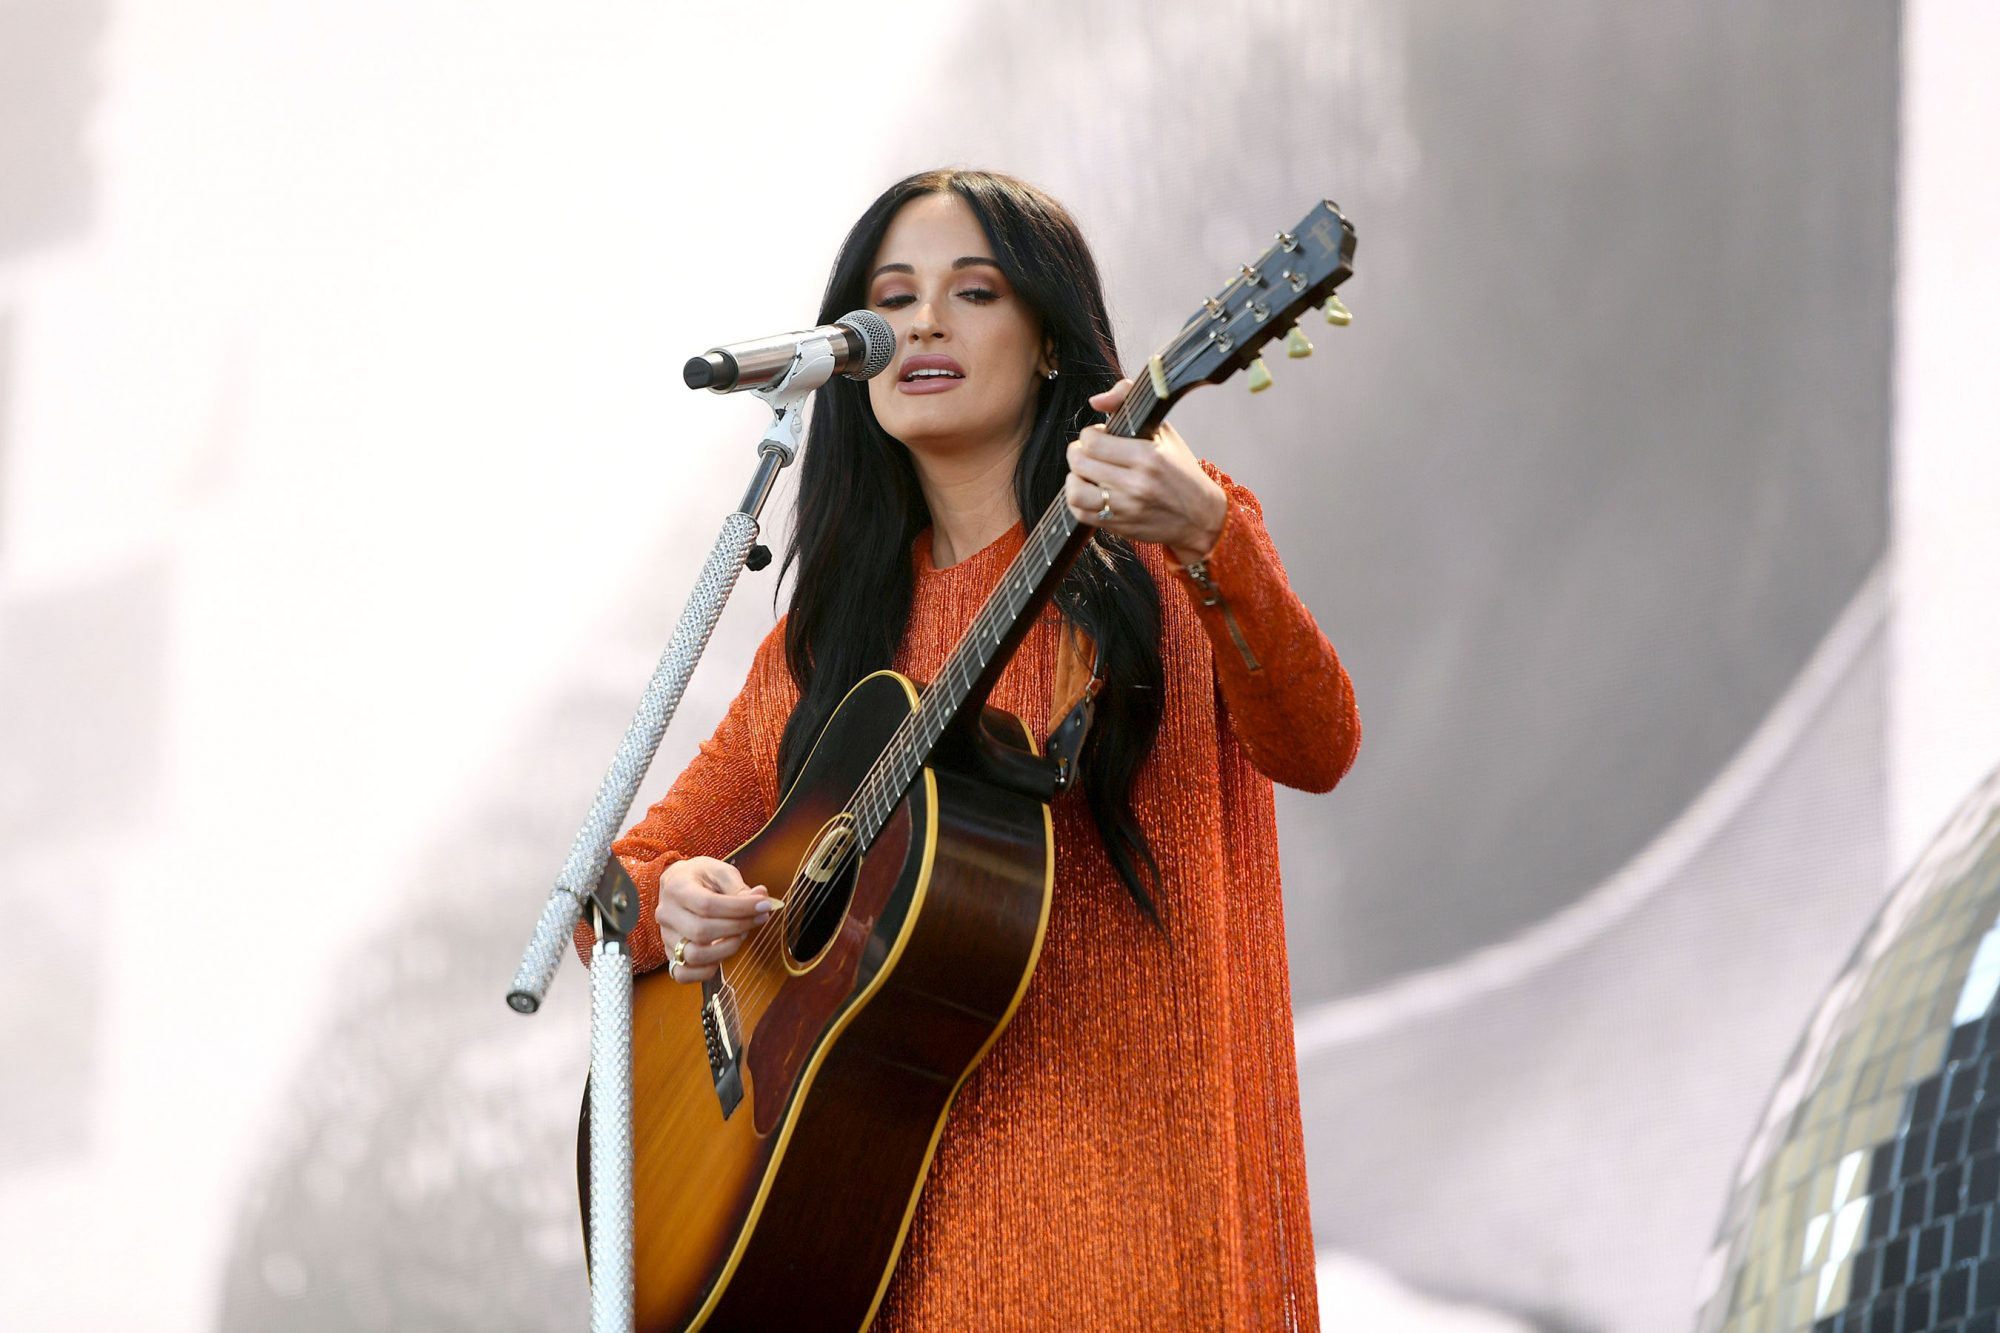 After a decade filled with bro-country odes to trucks, tailgates and tank tops, a new generation of female singer-songwriters like Musgraves, Maren Morris and Kelsea Ballerini are making their own mark on country music - and expanding the genre as they do it.